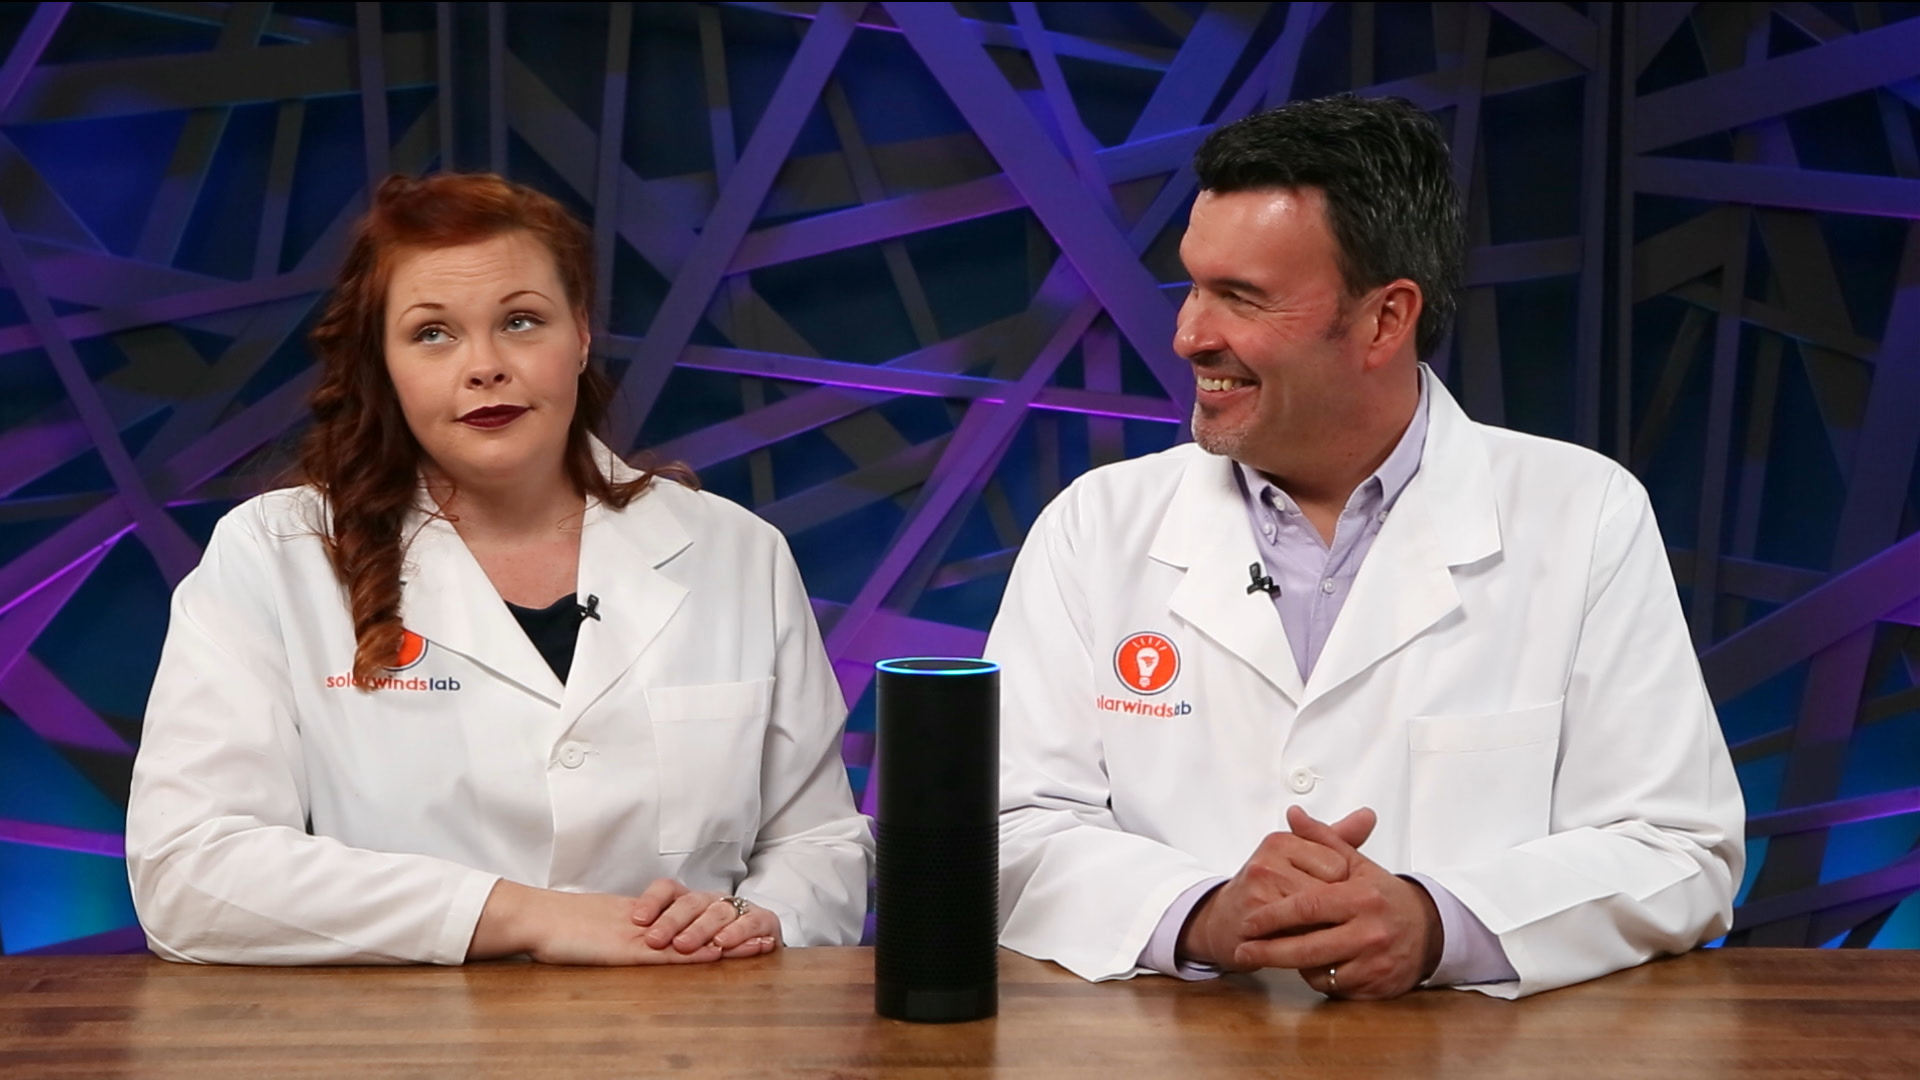 SolarWinds Lab #51--Breaking Up With Bad Habits: Monitoring, Security and Orion® Don'ts!